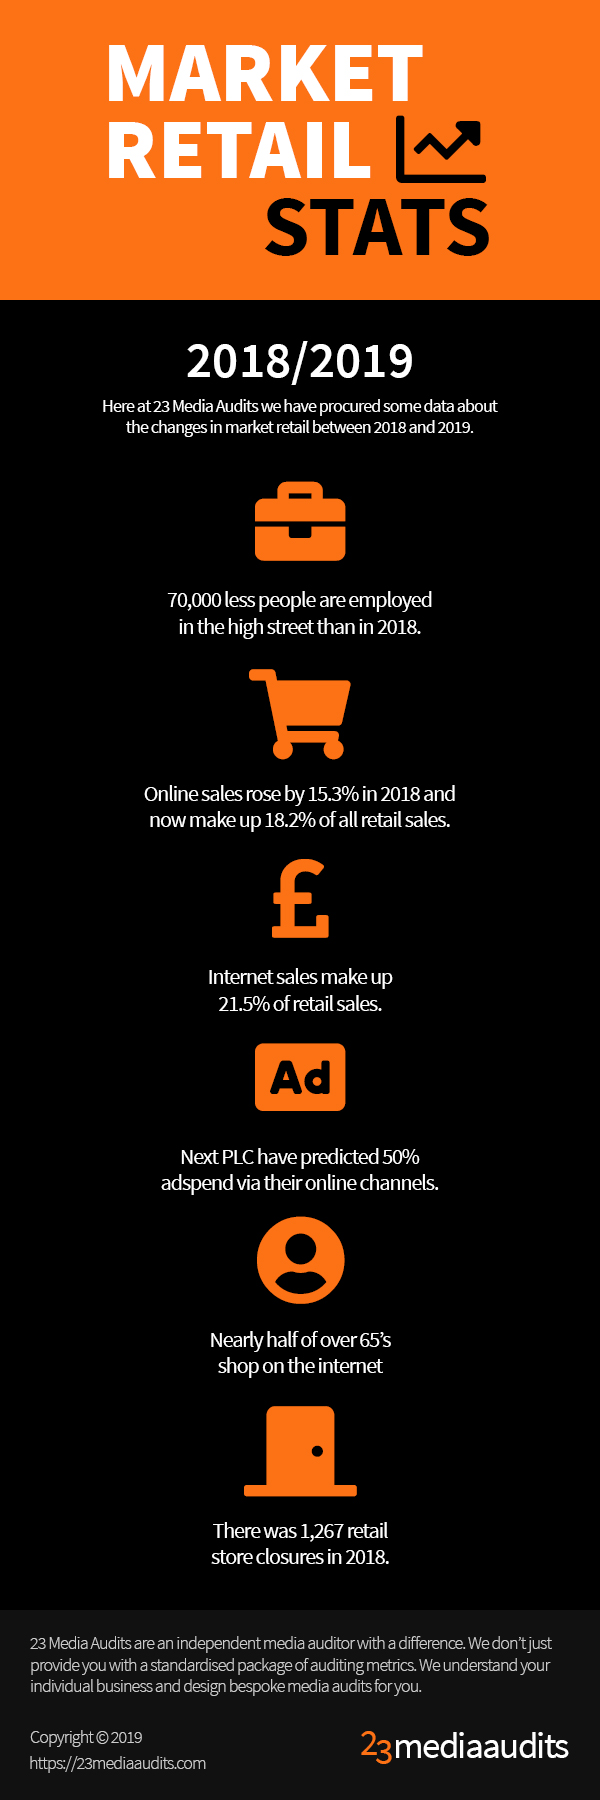 Market Retail Stats 2018/2019 Infographic